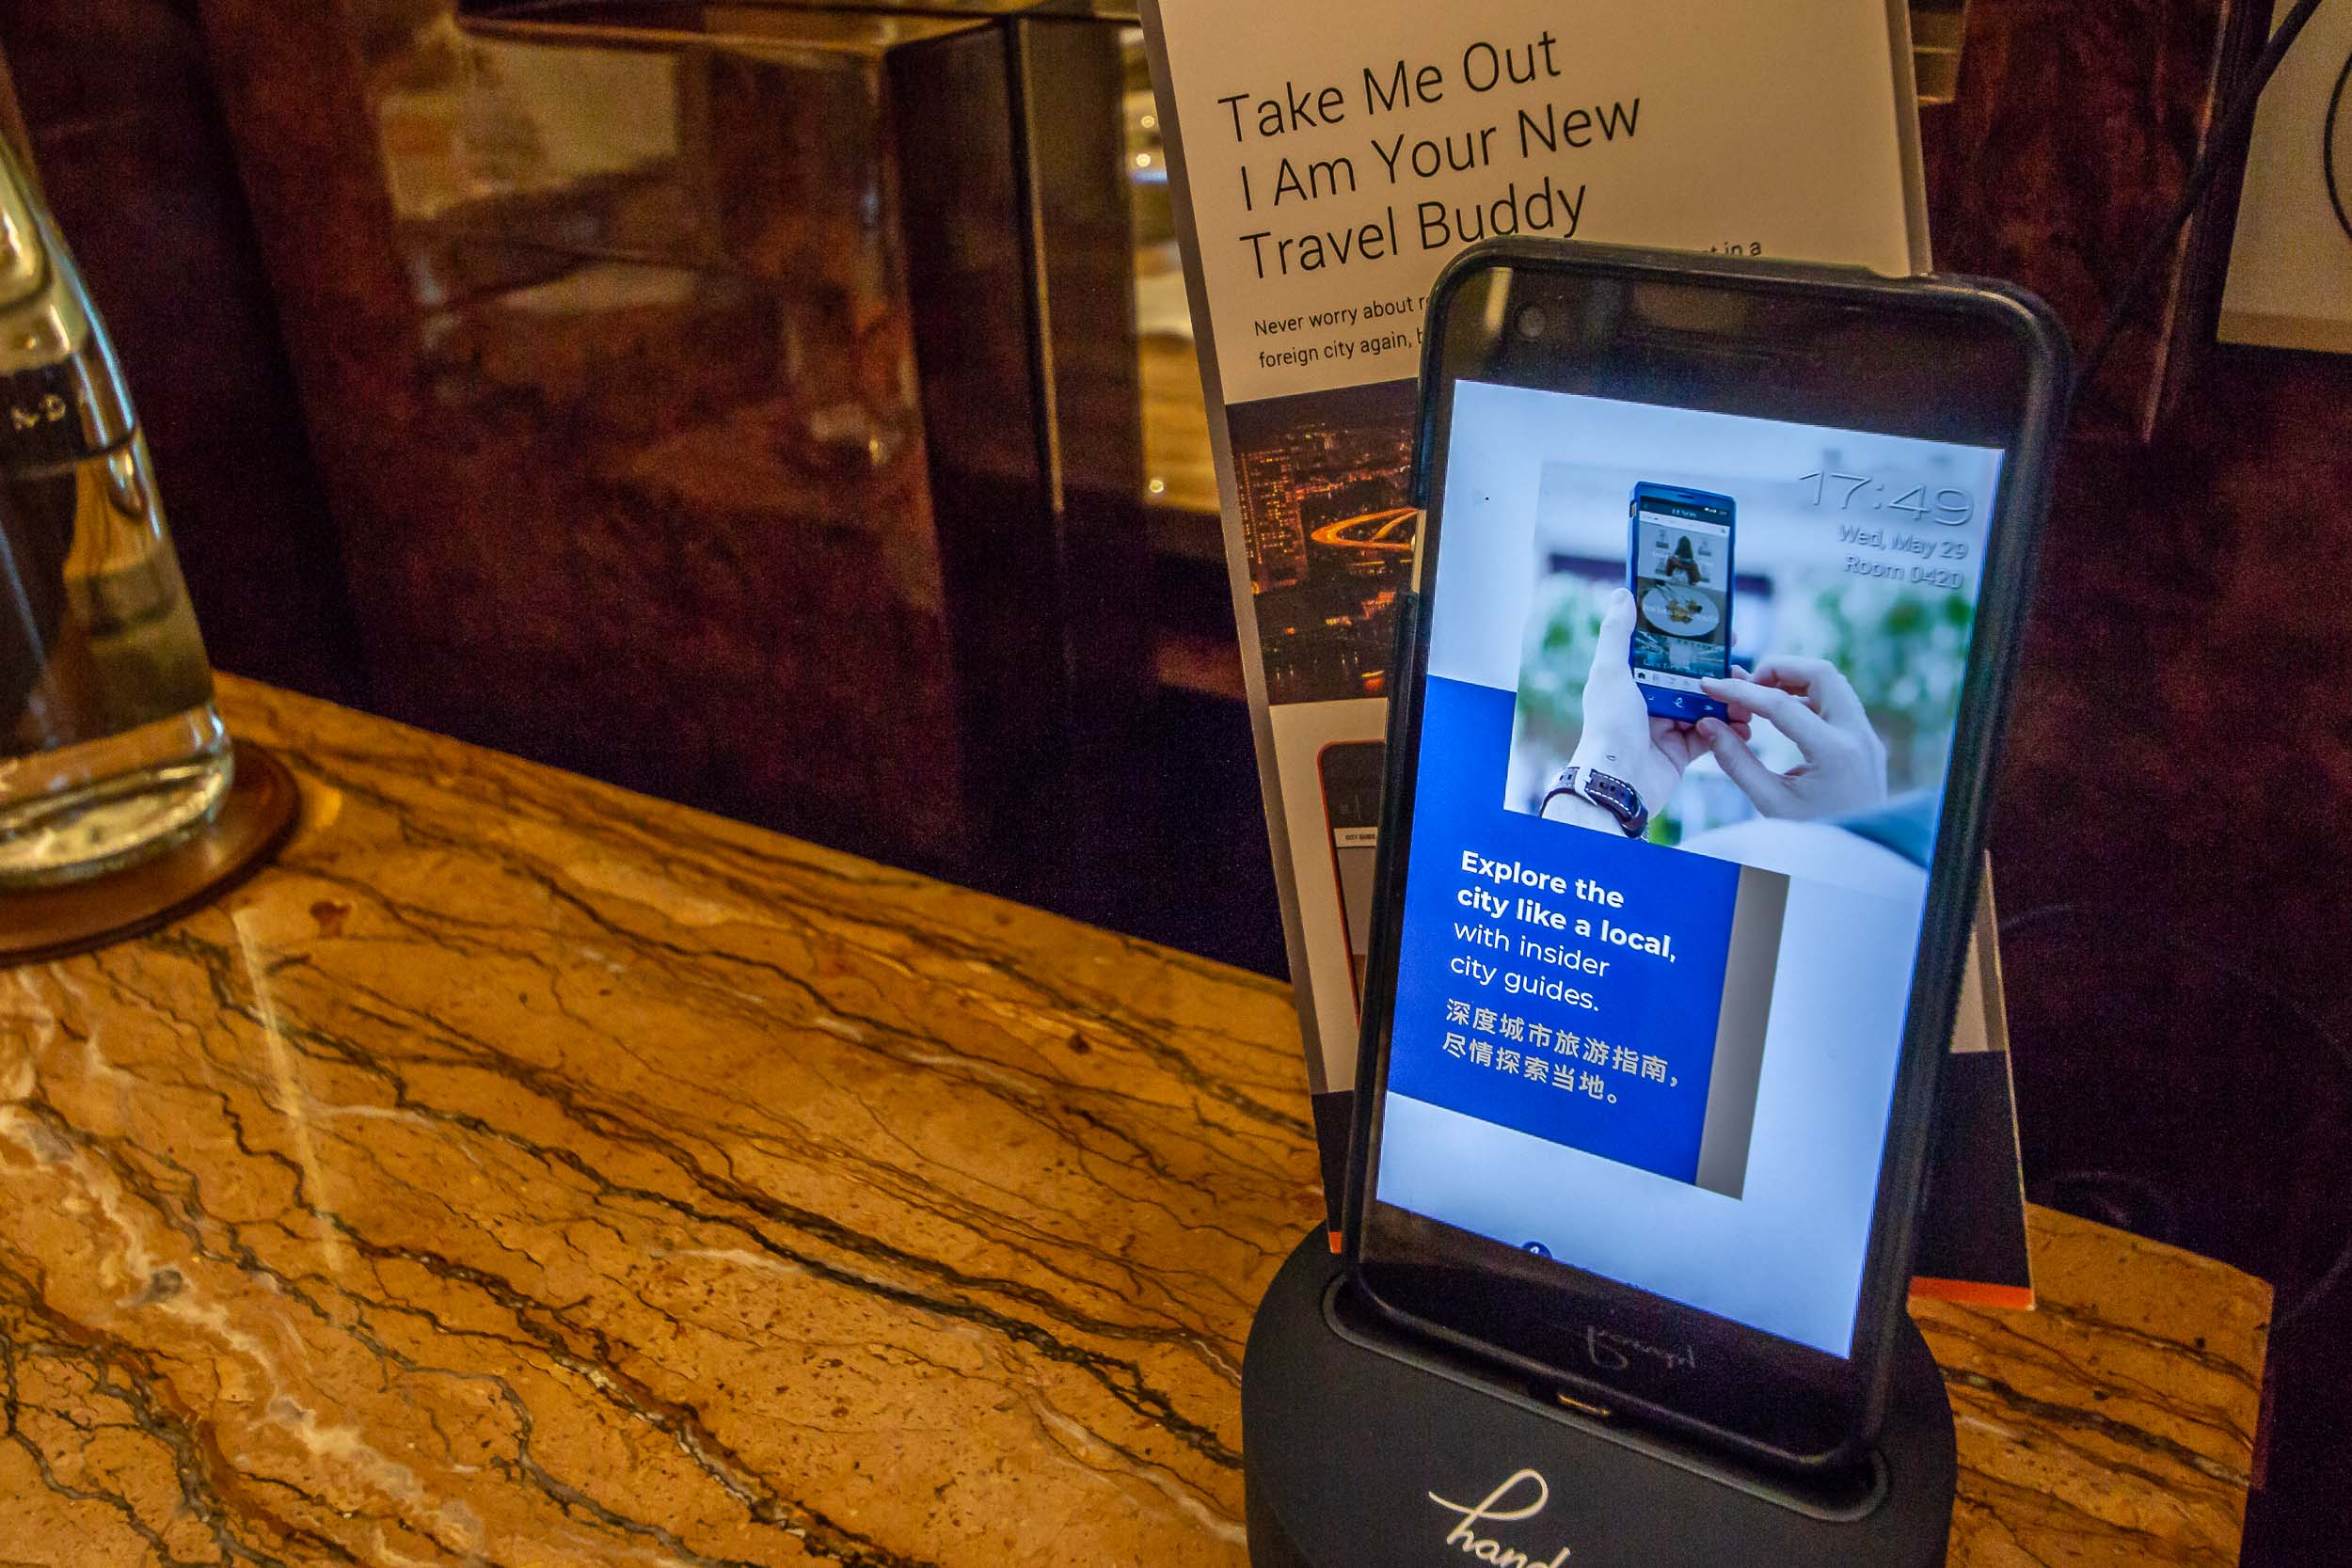 A local mobile phone is provided for use both within and outside the hotel (data and local calls are included free of charge).